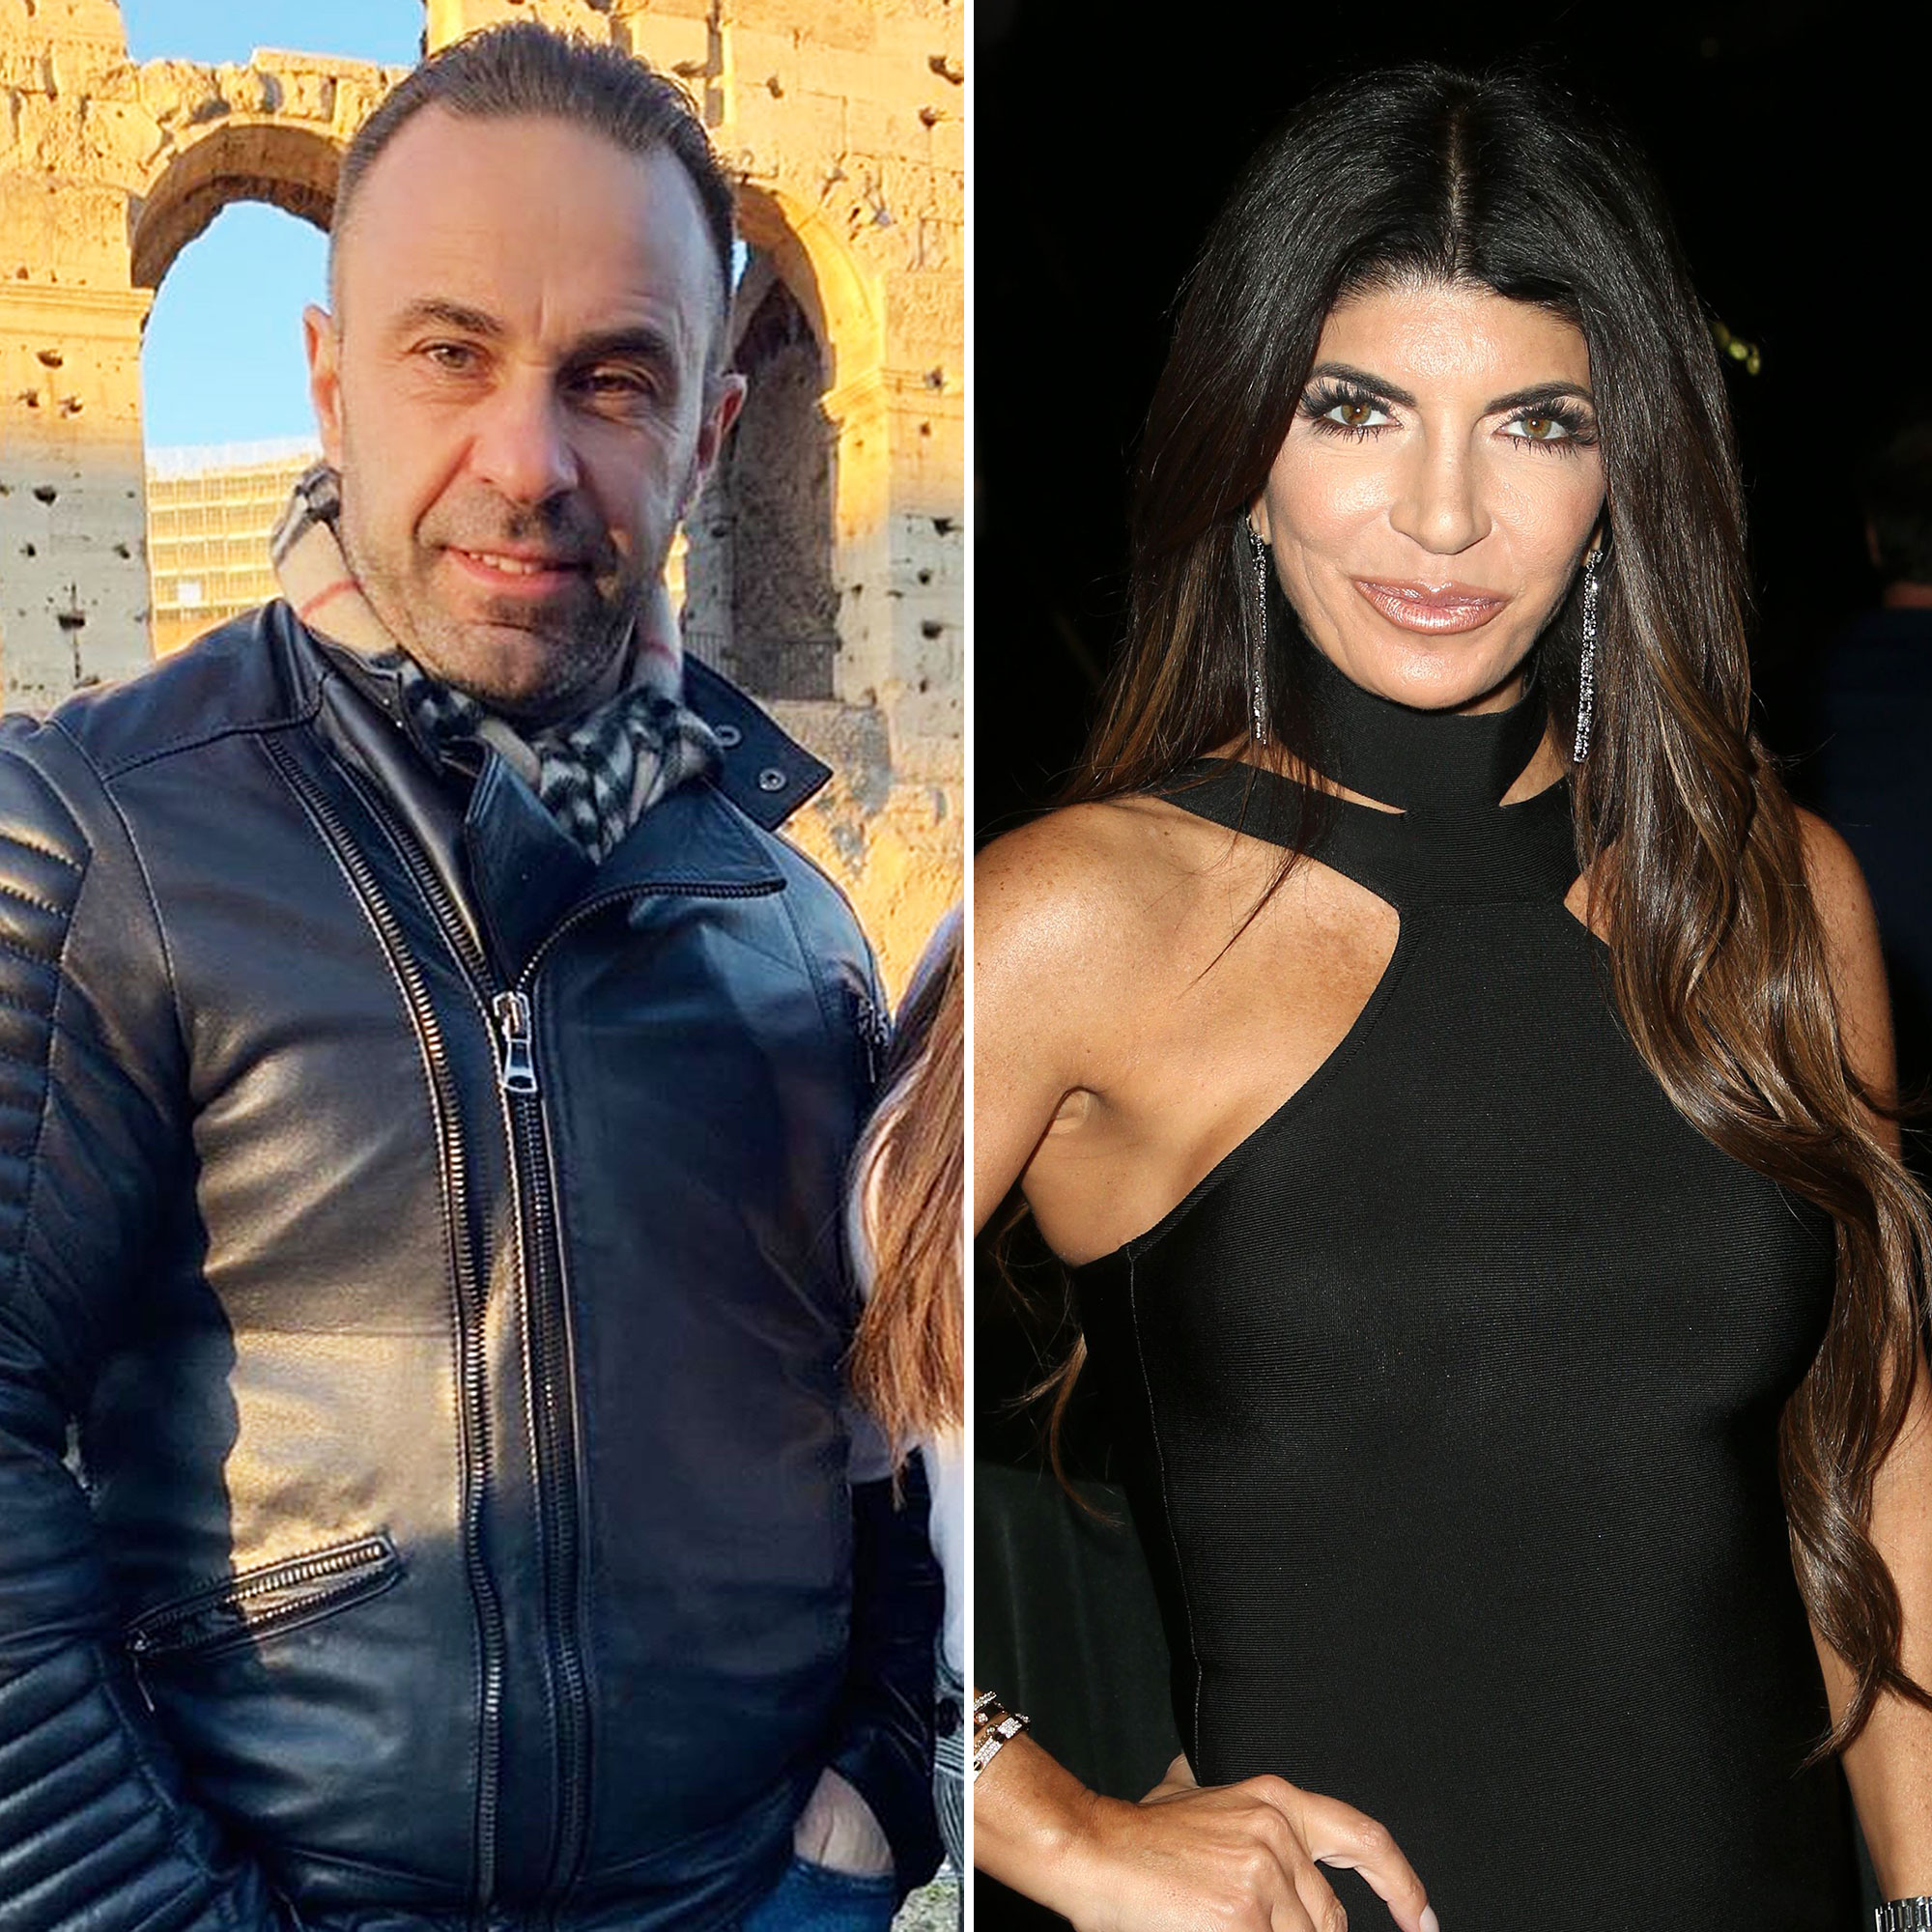 Joe Giudice Implies He Wont Return to US After Teresa Giudice Split